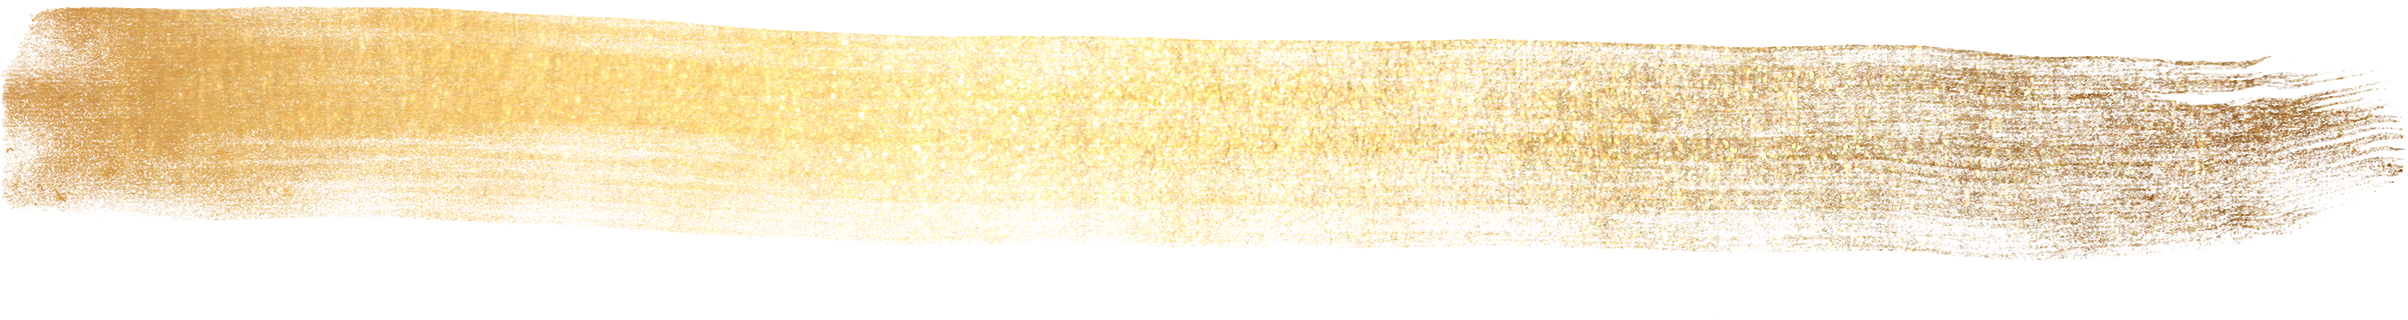 Gold_Paint_Stroke_0015_6.png